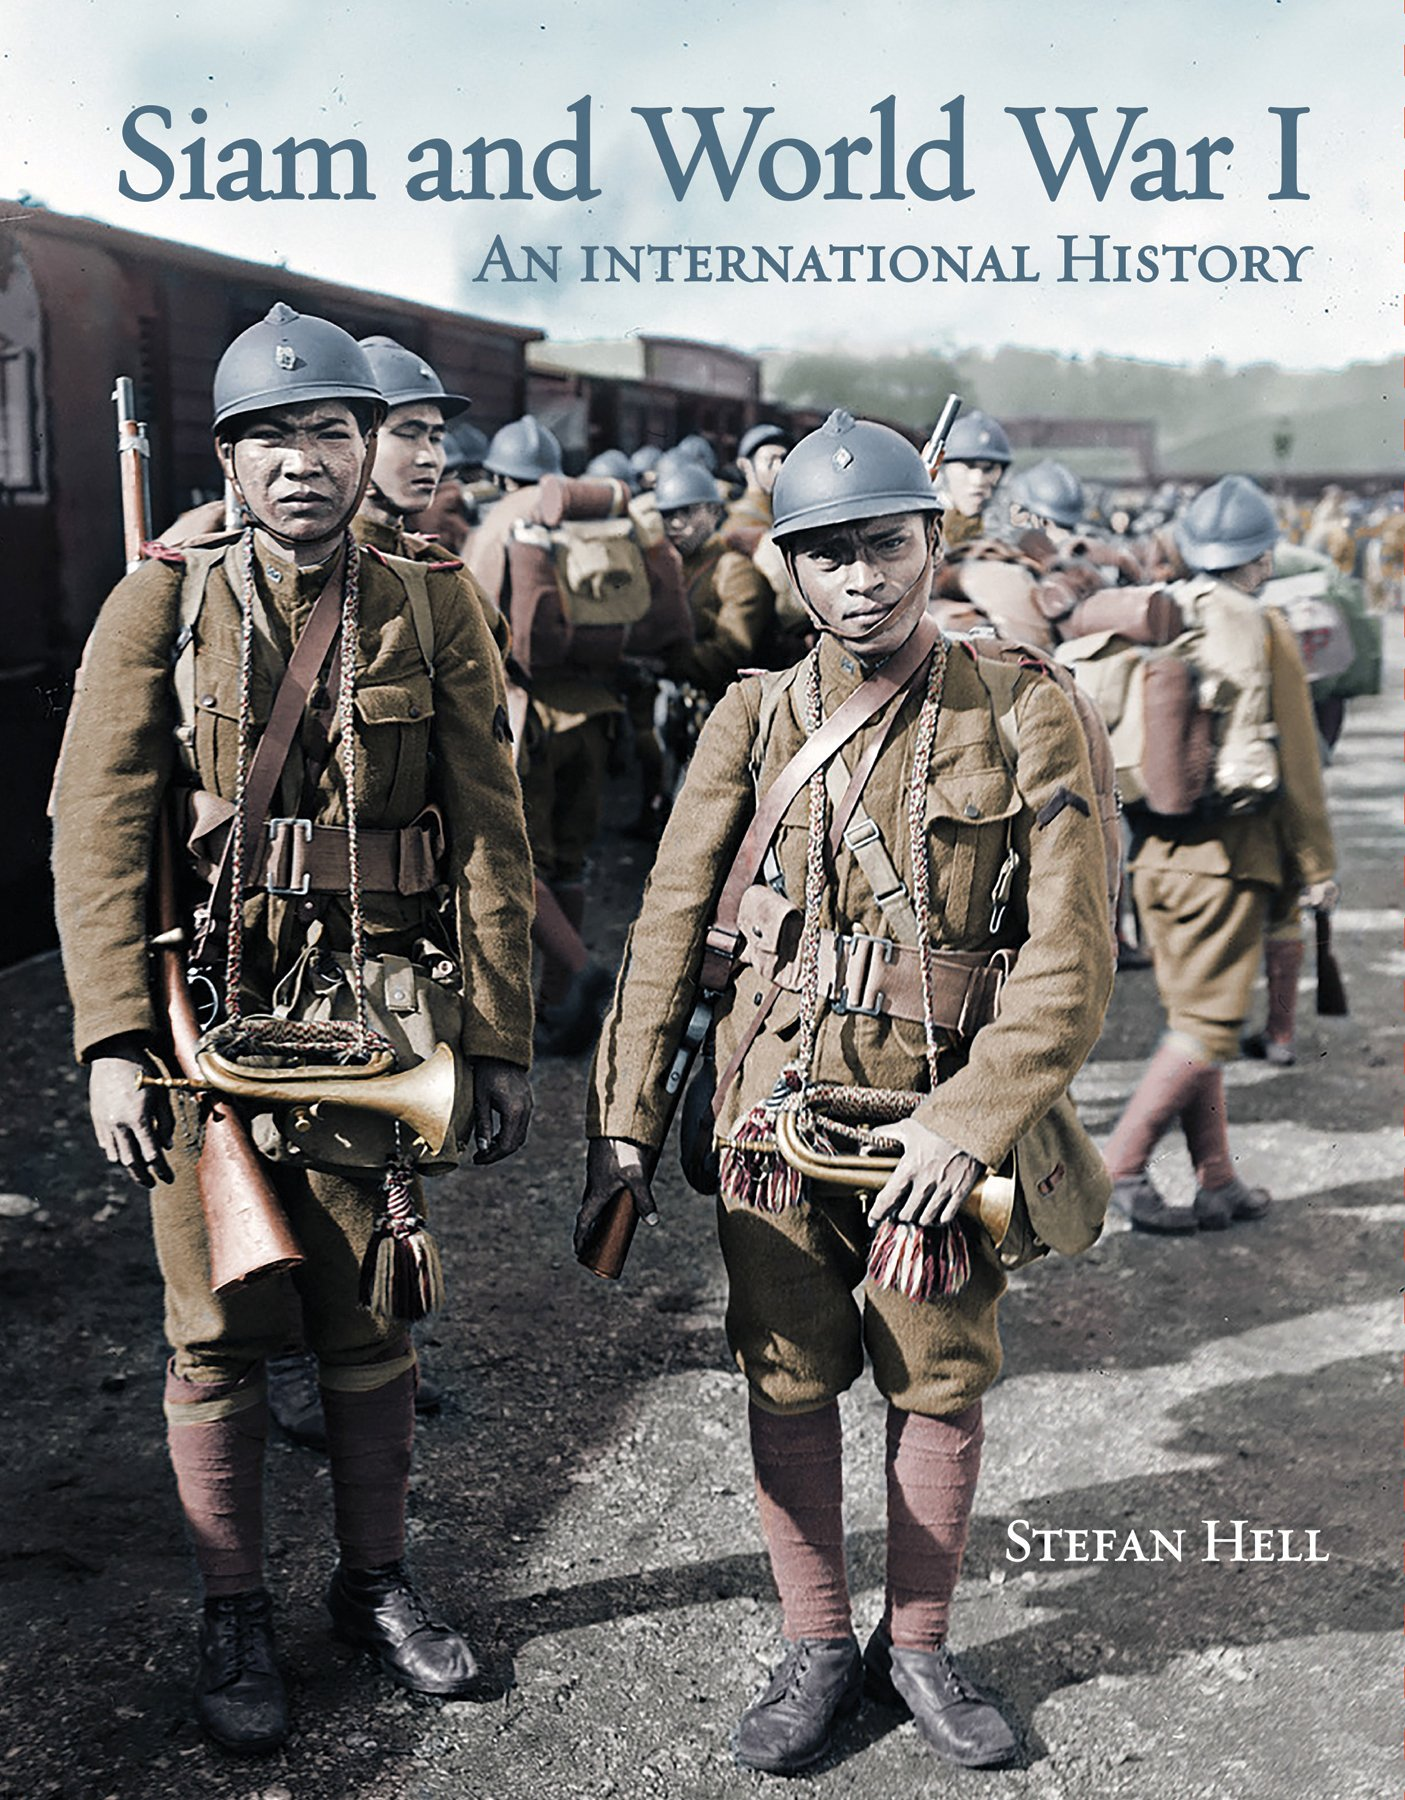 Siam and World War 1: An International History: Stefan Hell